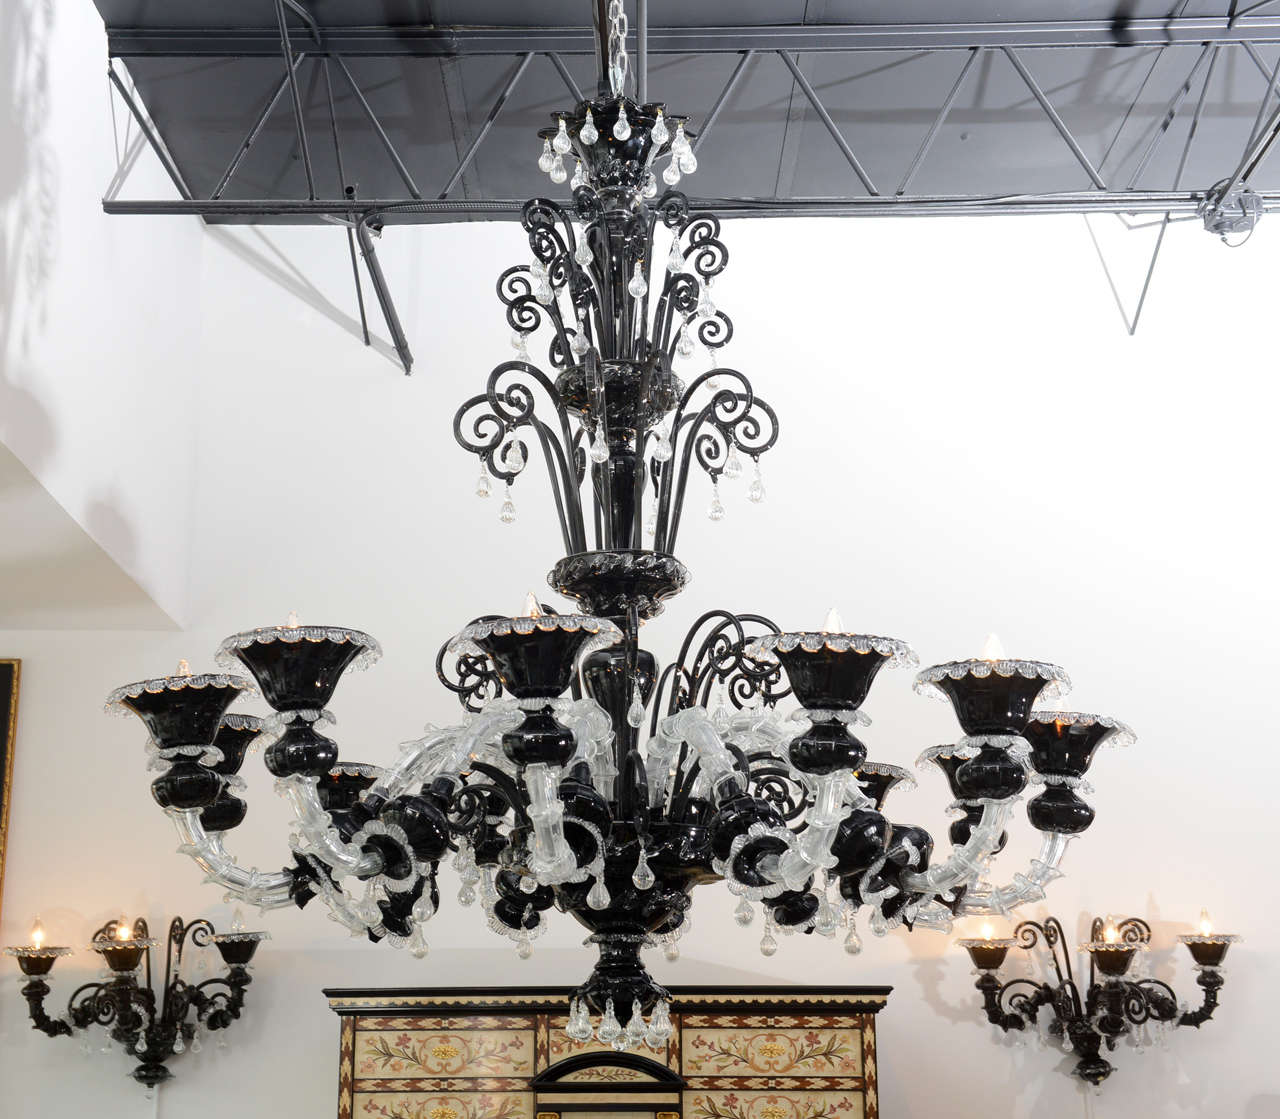 Chandelier with scrolling arms, pendants and drops.